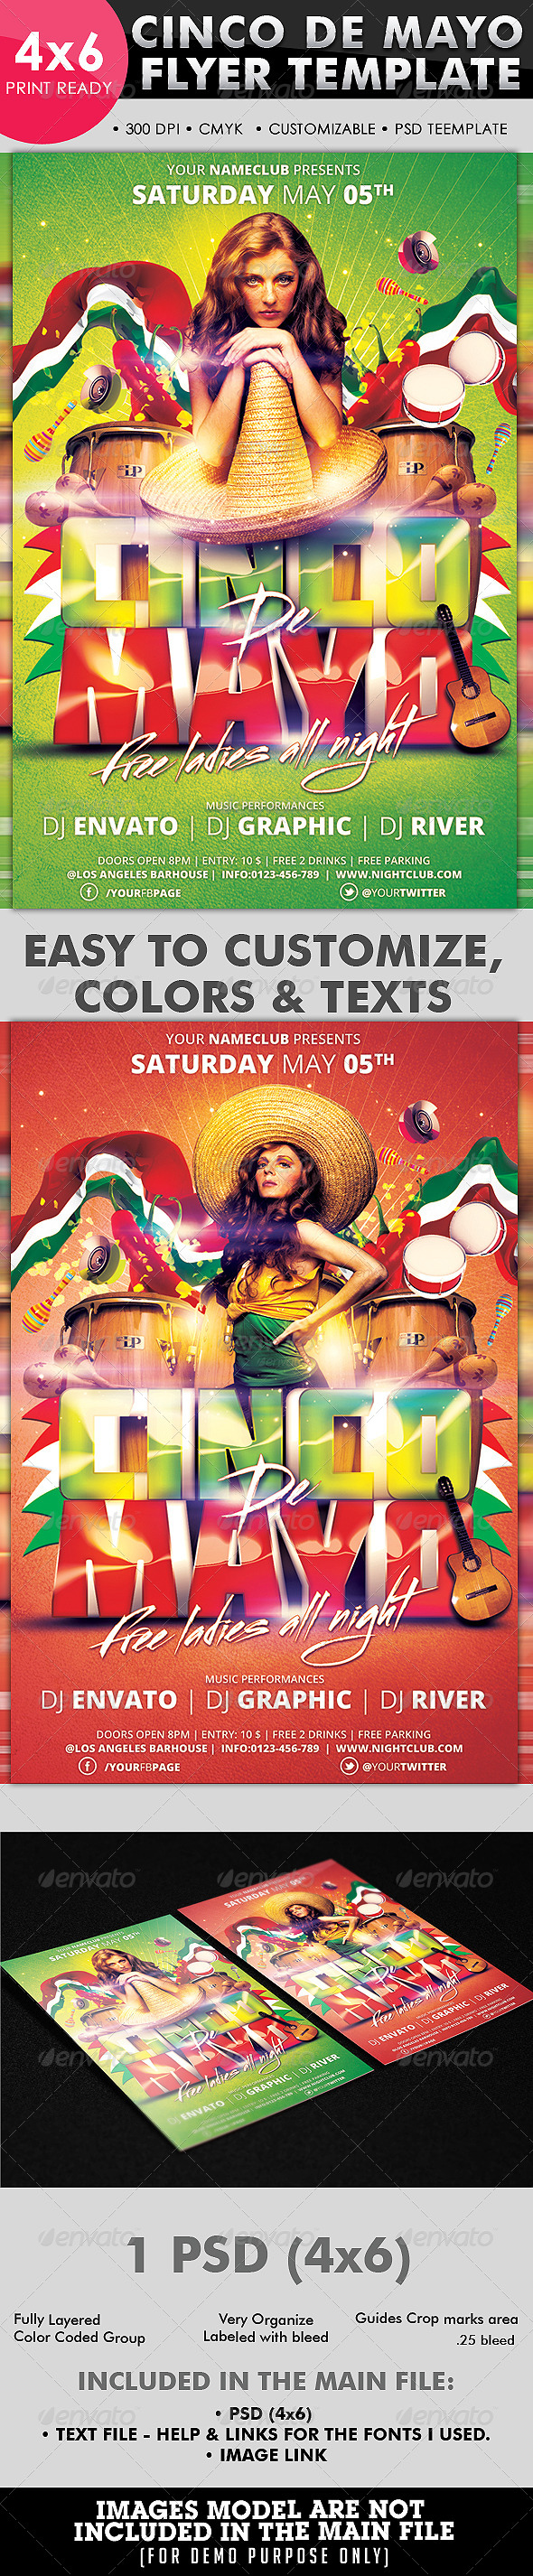 GraphicRiver Cinco De Mayo Flyer Template 4486101